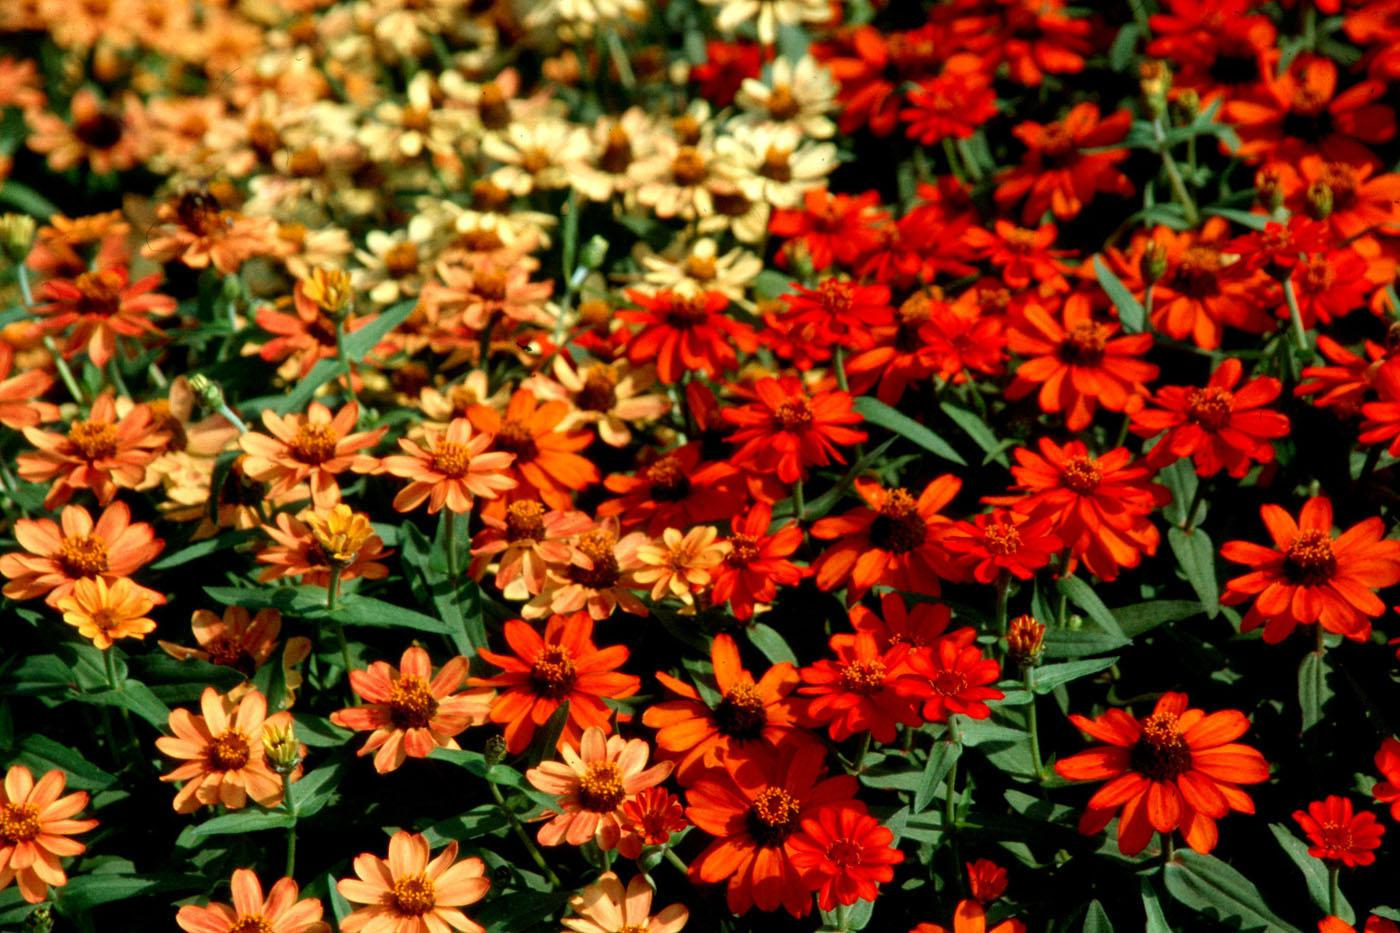 Flower beds will come ablaze when Profusion Fire zinnias are mass planted.